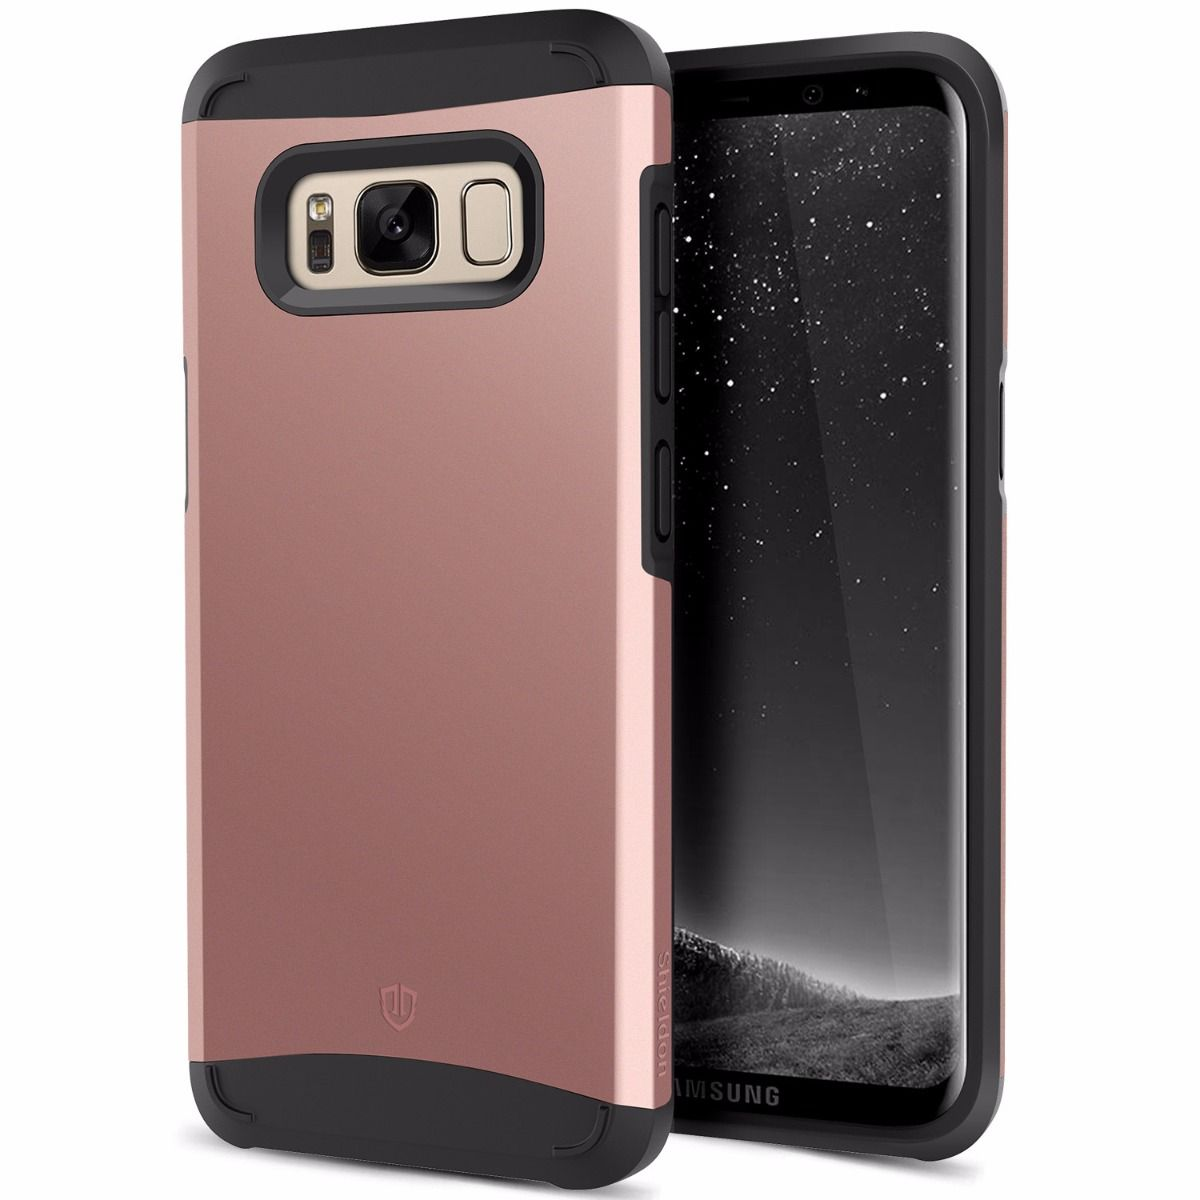 new styles 587a2 f5ca3 SHIELDON Best Galaxy S8 Case for Drop Protection - Sunrise Series